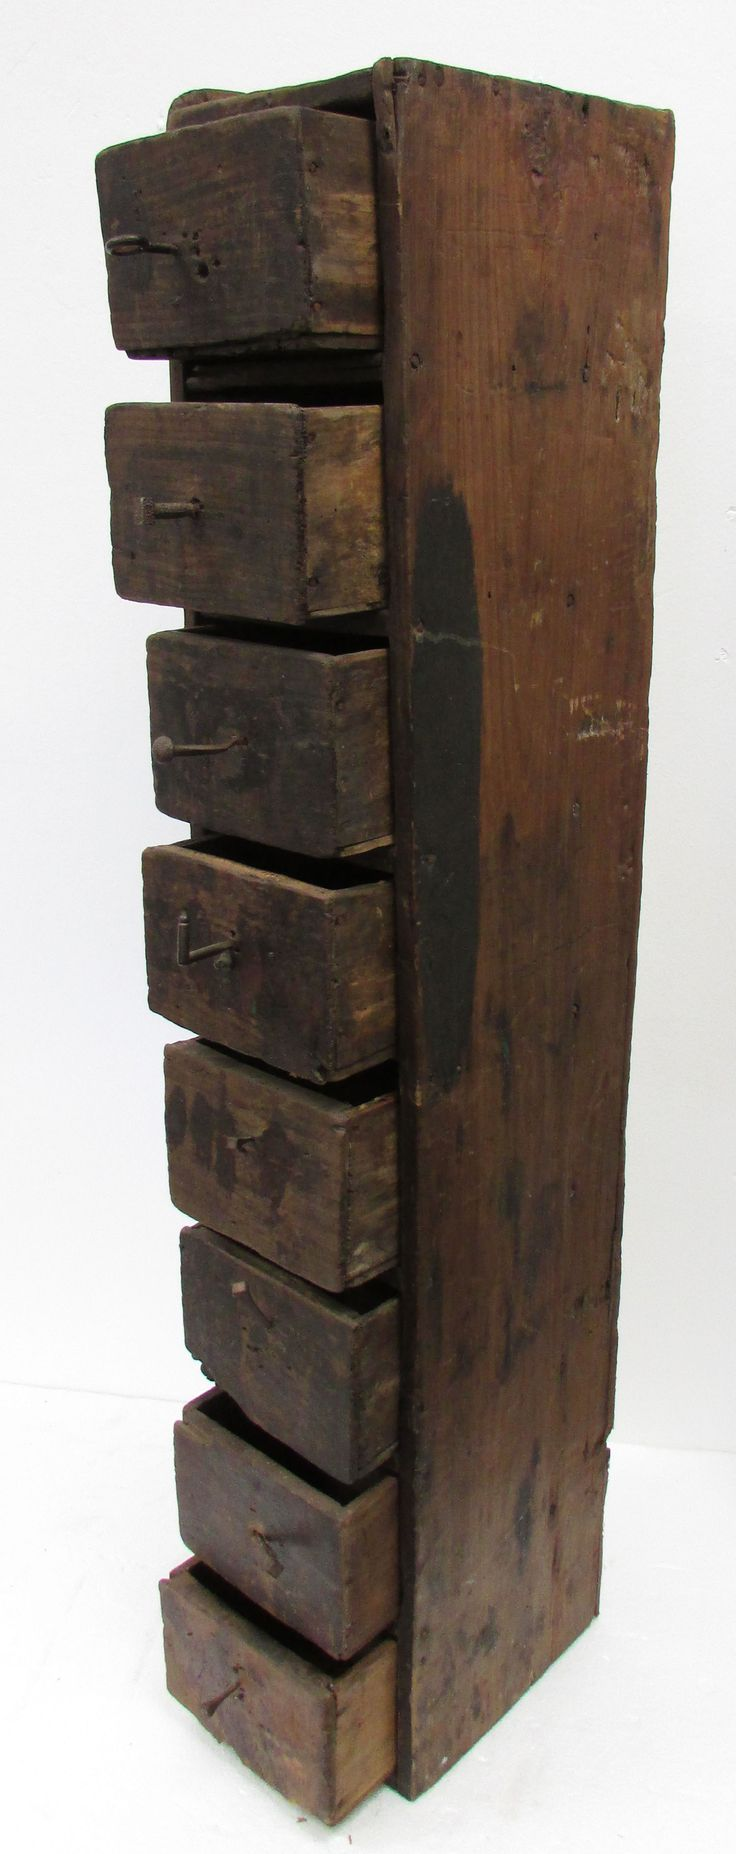 Wooden Storage Cabinets | Antique French Wooden Tool Storage Cabinets  I  Would Love This!